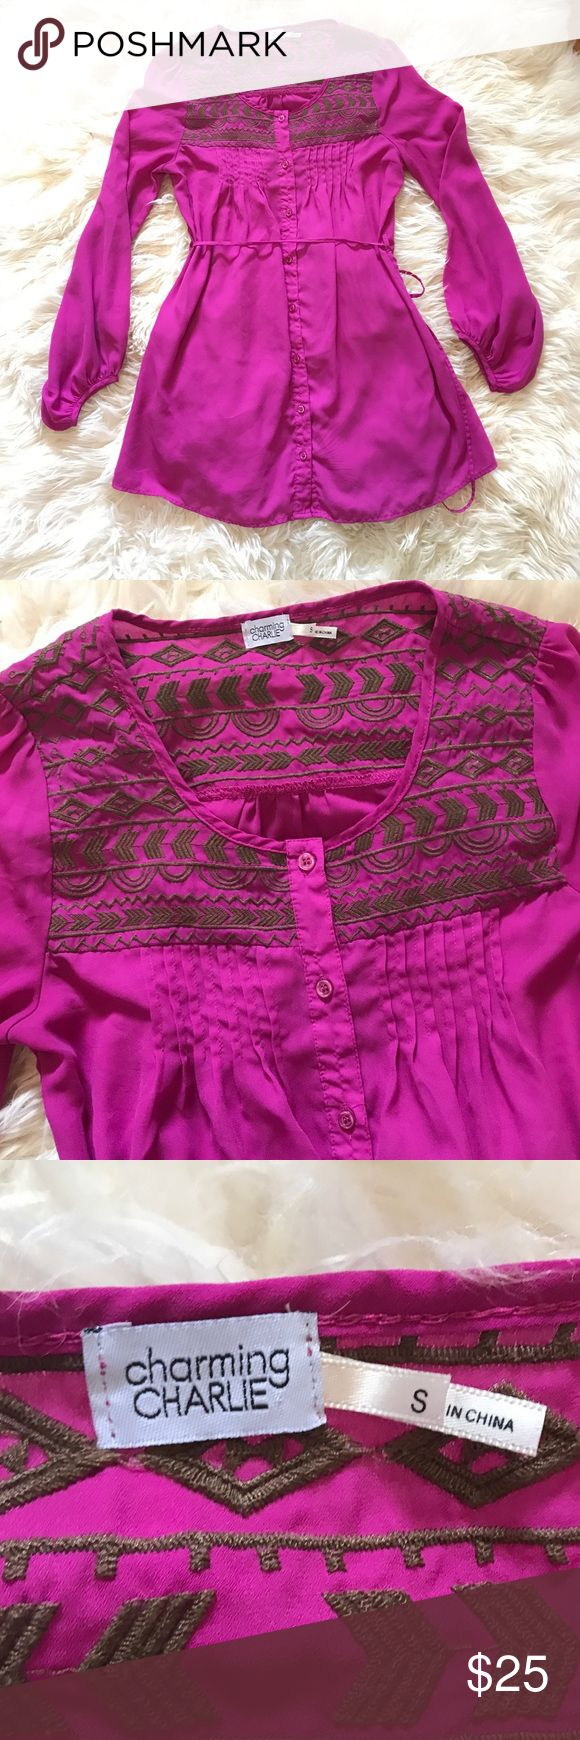 Charming Charlie Purple Embroidered Dress Gorgeous purple embroidered Charming Charlie Dress that ties at the waist. The color is perfect for fall! Charming Charlie Dresses Long Sleeve